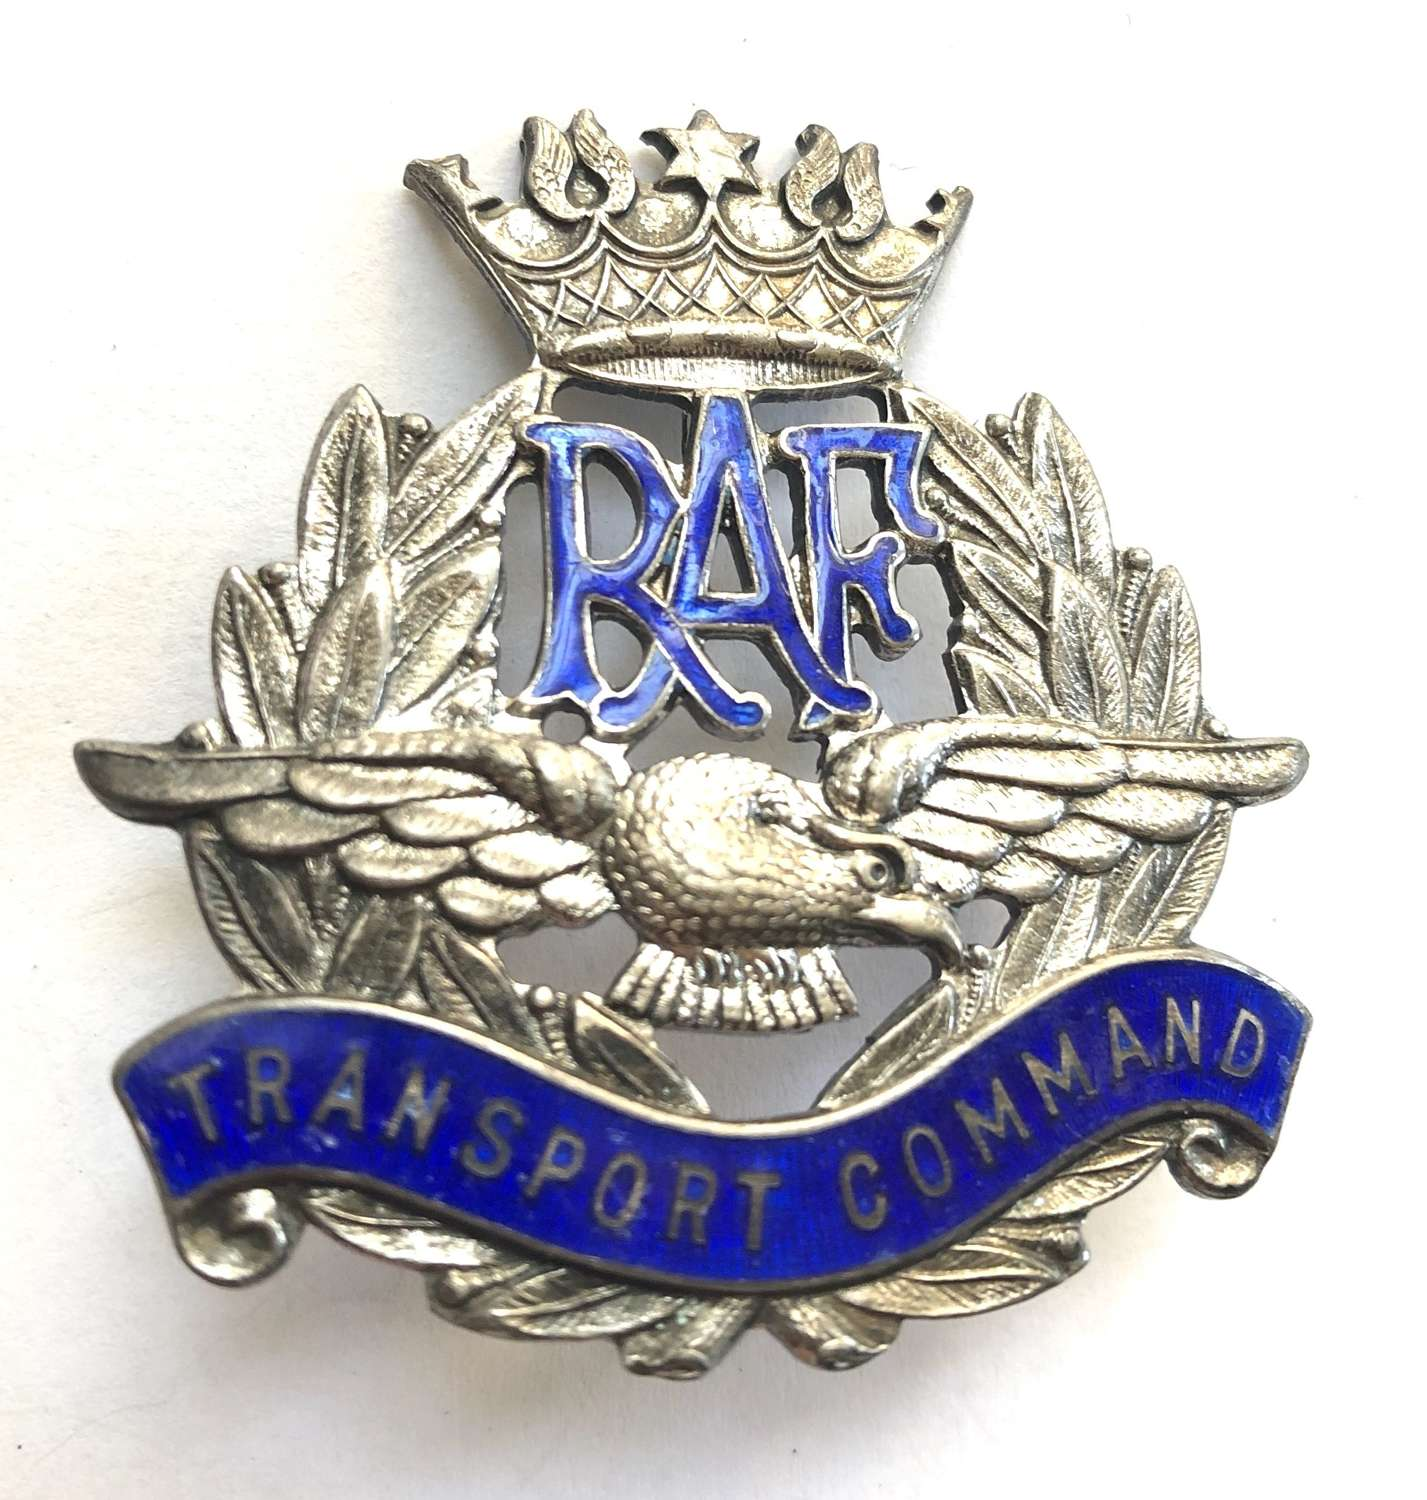 RAF Transport Command WW2 silver and enamel cap badge circa 1943-45